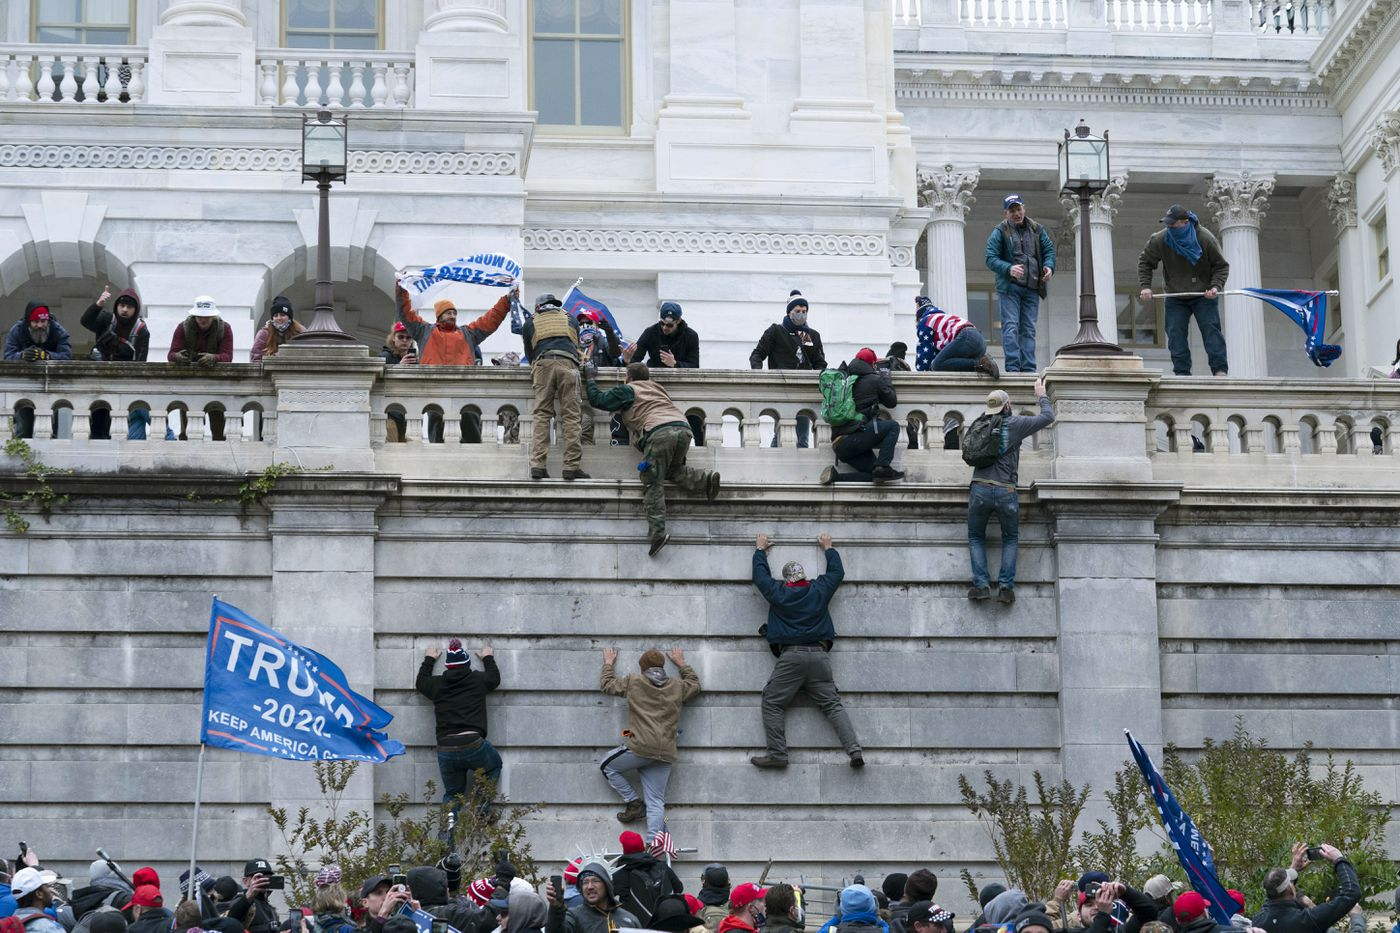 Supporters of President Donald Trump climb the west wall of the the U.S. Capitol in Washington. (AP Photo/Jose Luis Magana File)